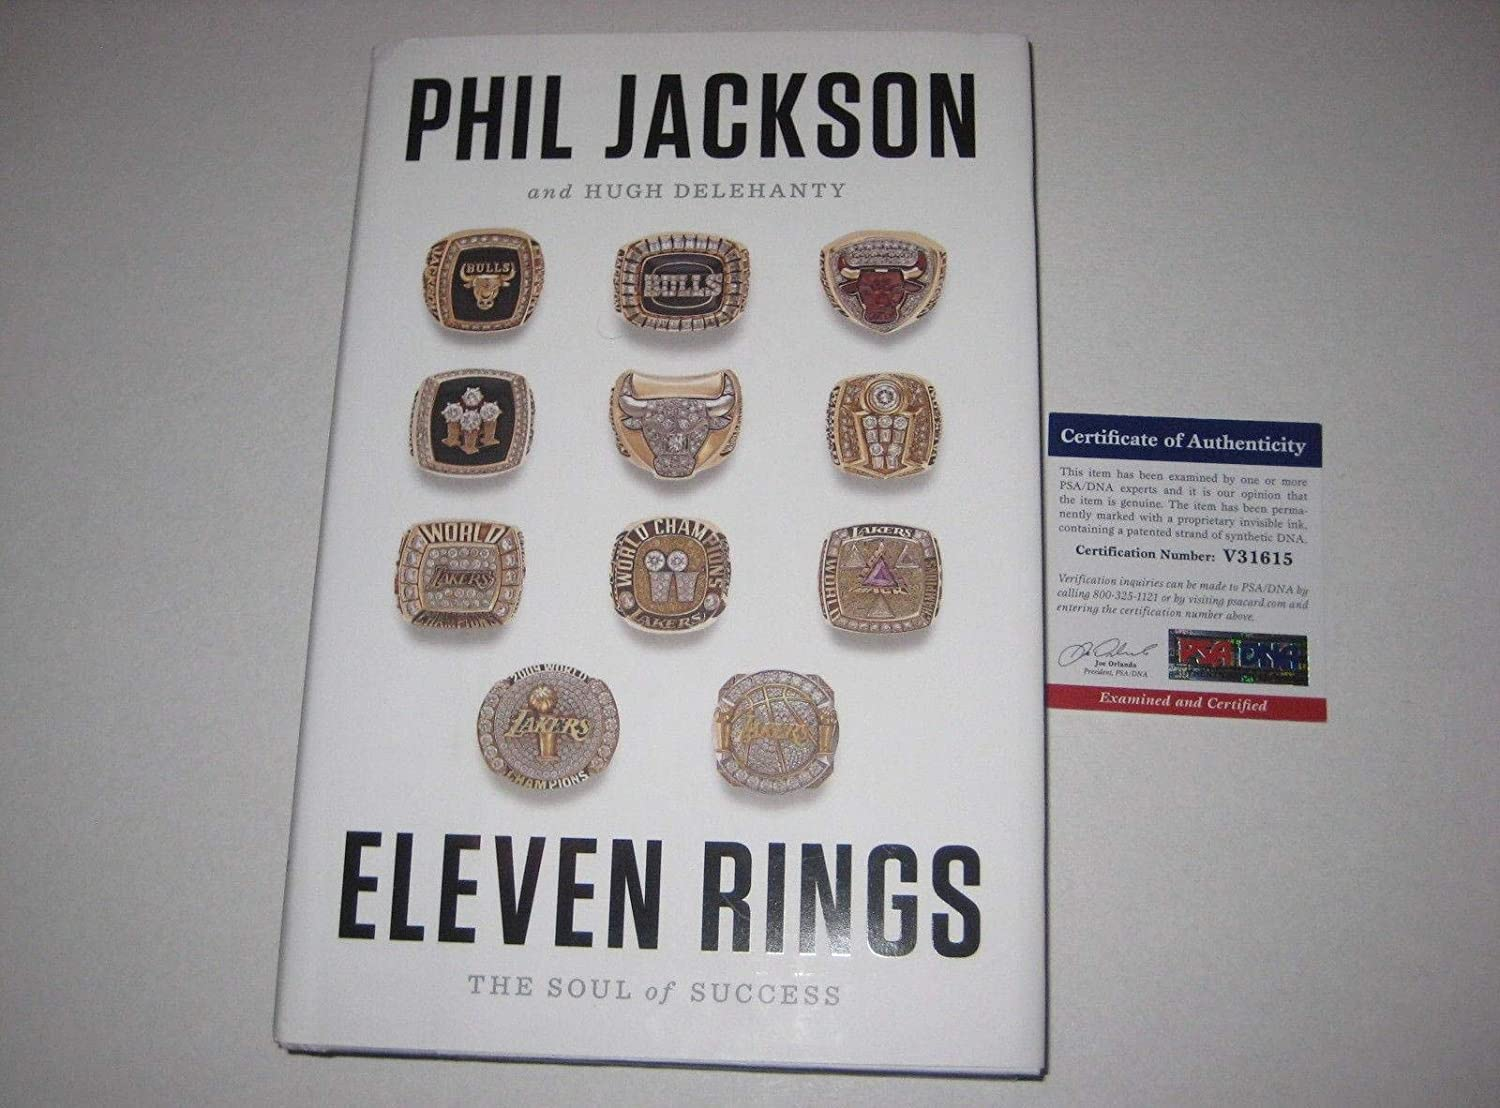 PHIL JACKSON Signed ELEVEN RINGS: The Soul of Success Hardcover Book w/COA  - PSA/DNA Certified - NBA Autographed Miscellaneous Items at Amazon's  Sports ...